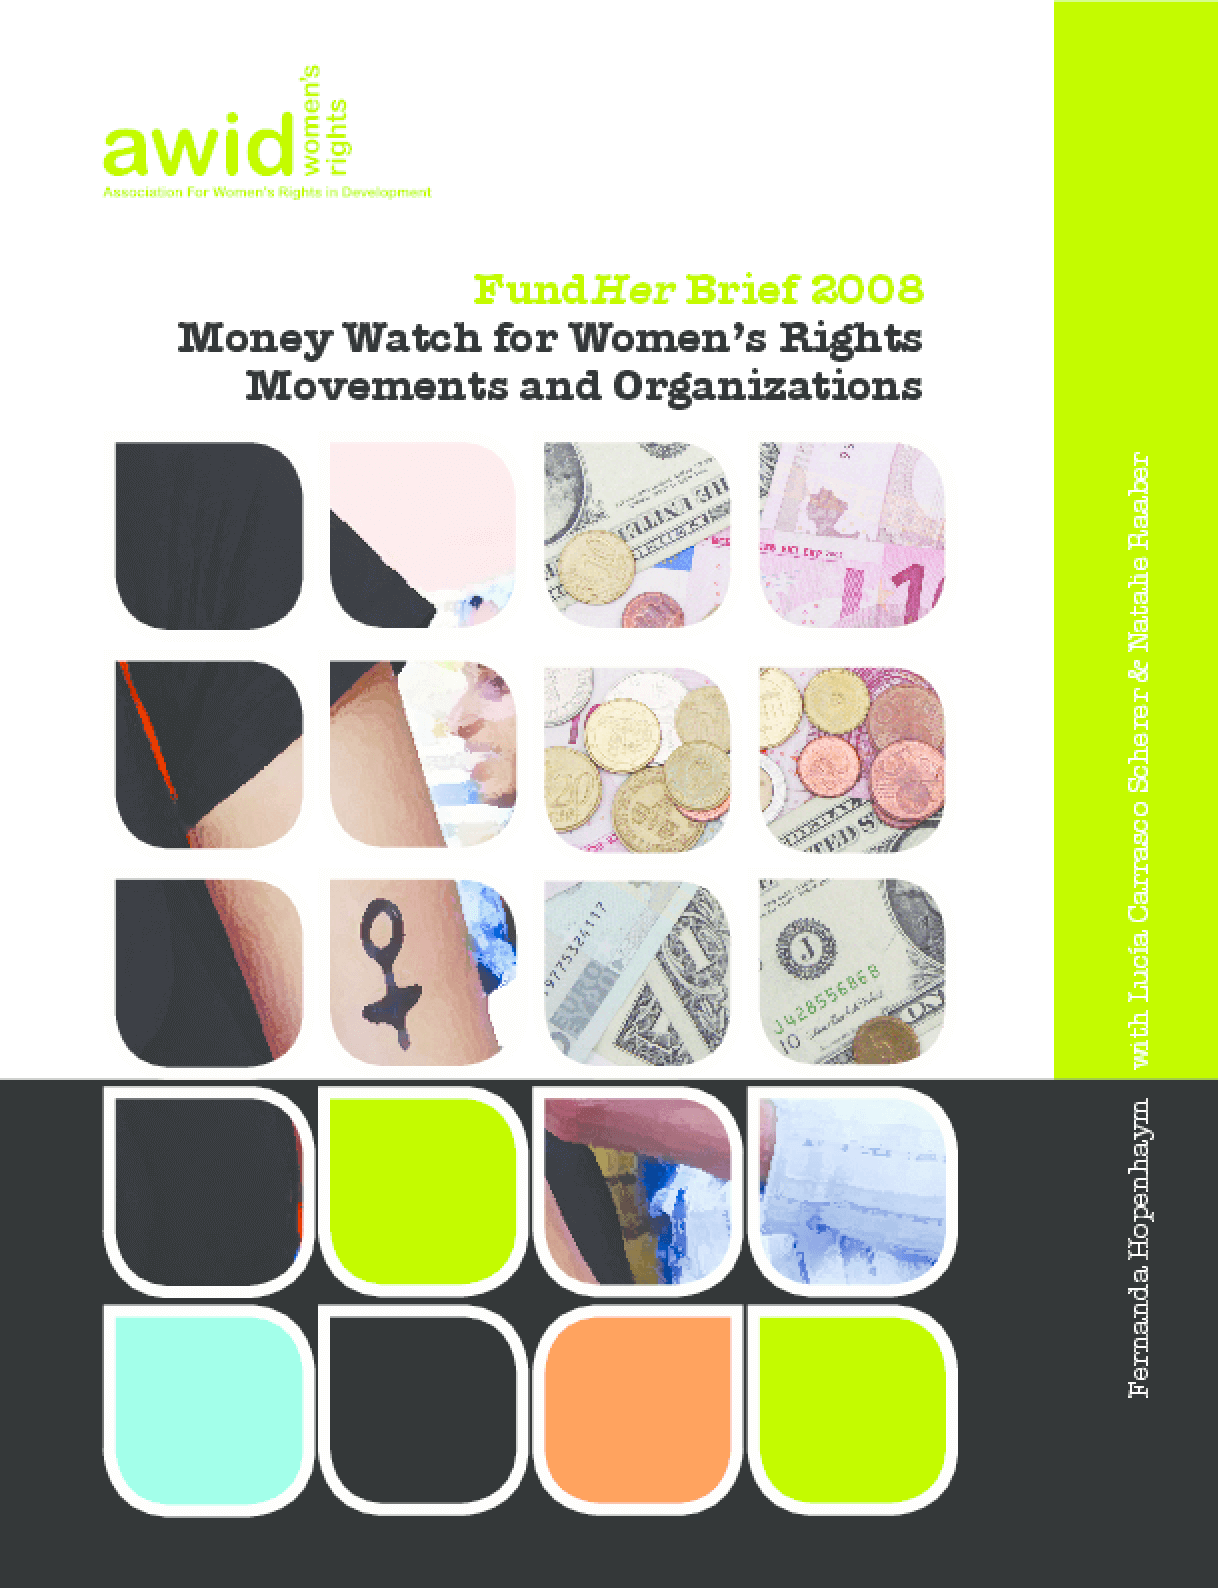 FundHer Brief 2008: Money Watch for Women's Rights Movements and Organizations